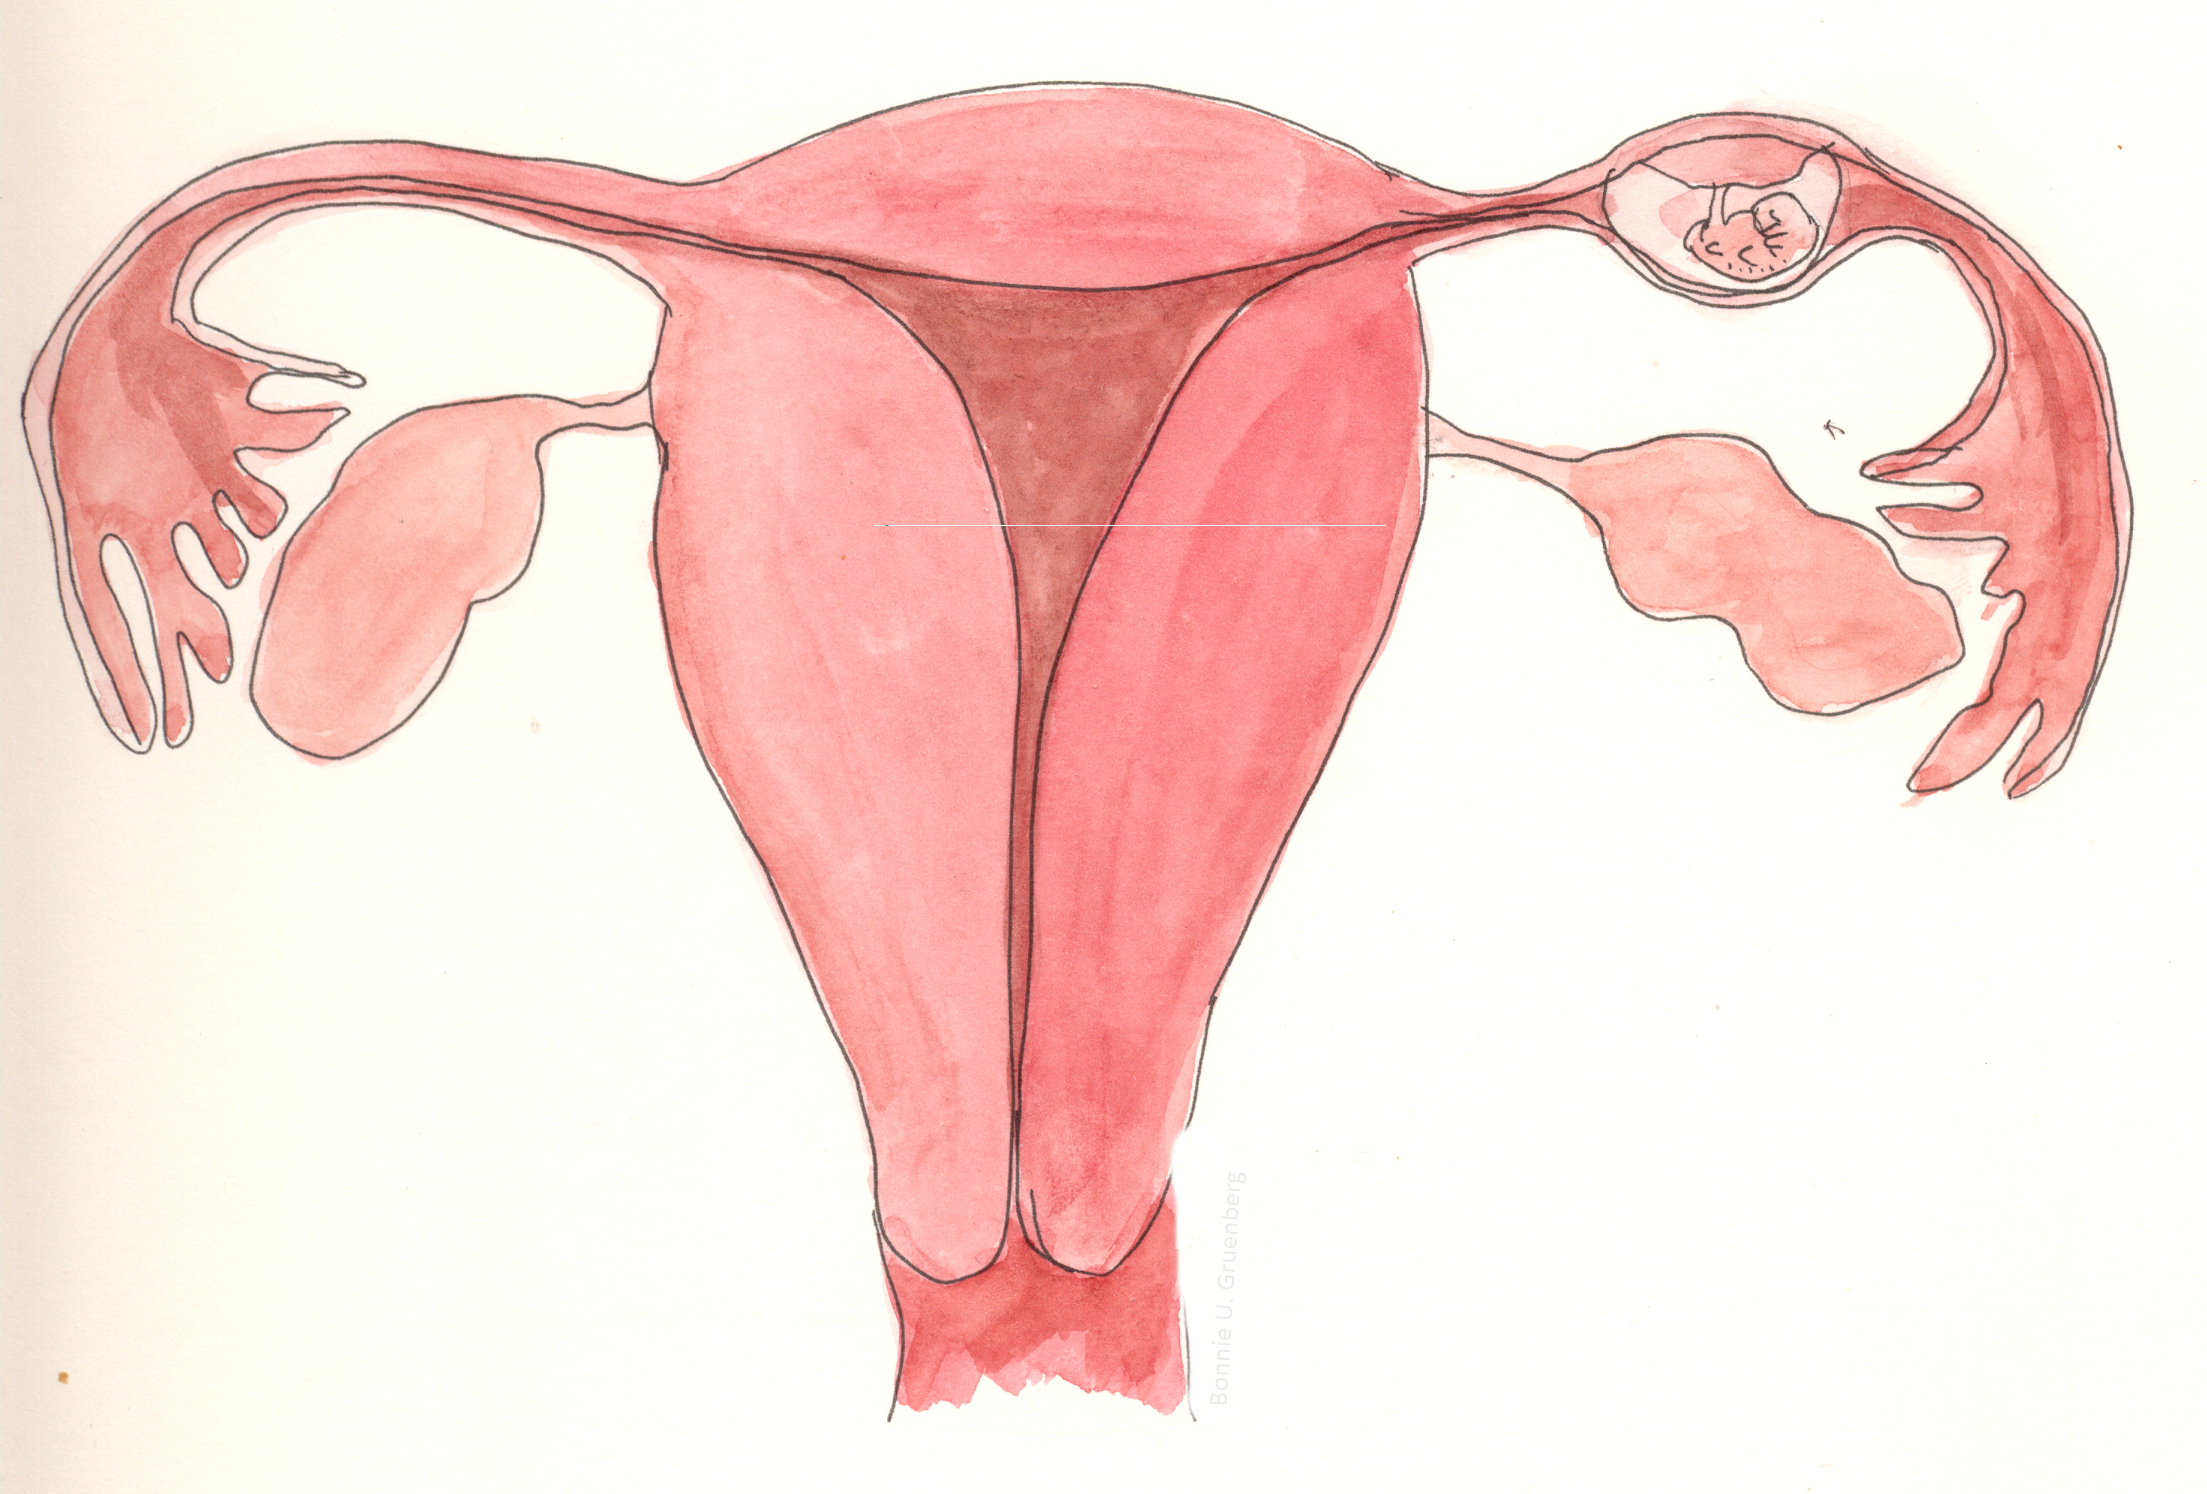 Fileectopic Pregnancy In Fallopian Tubeg Wikimedia Commons